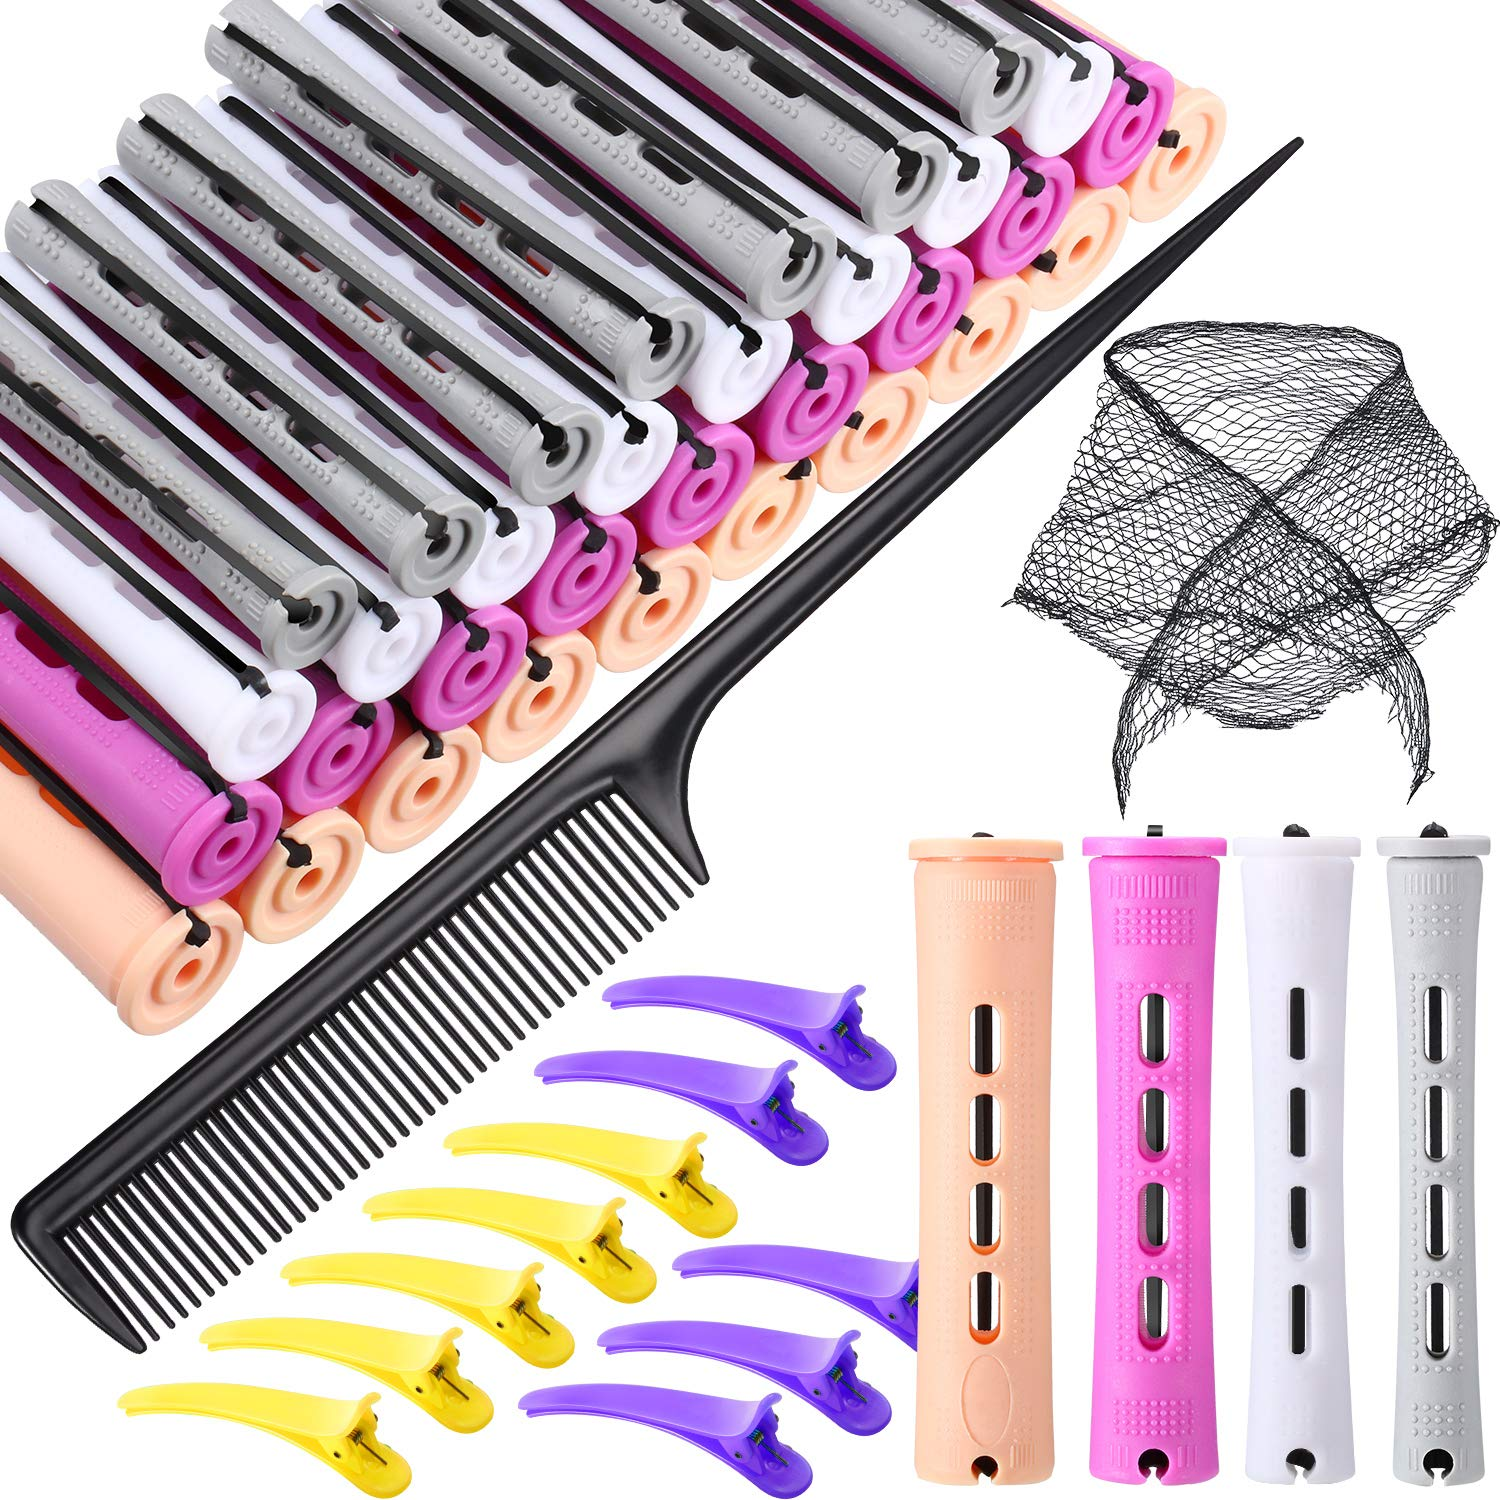 52 Pieces Hair Perm Rods Set, 40 Pieces Plastic Hair Rollers 4 Sizes Cold Wave Curlers Perming Rods with Cotton Triangle Hair Net Duckbill Hairpin Parting Comb for Hairdressing Styling